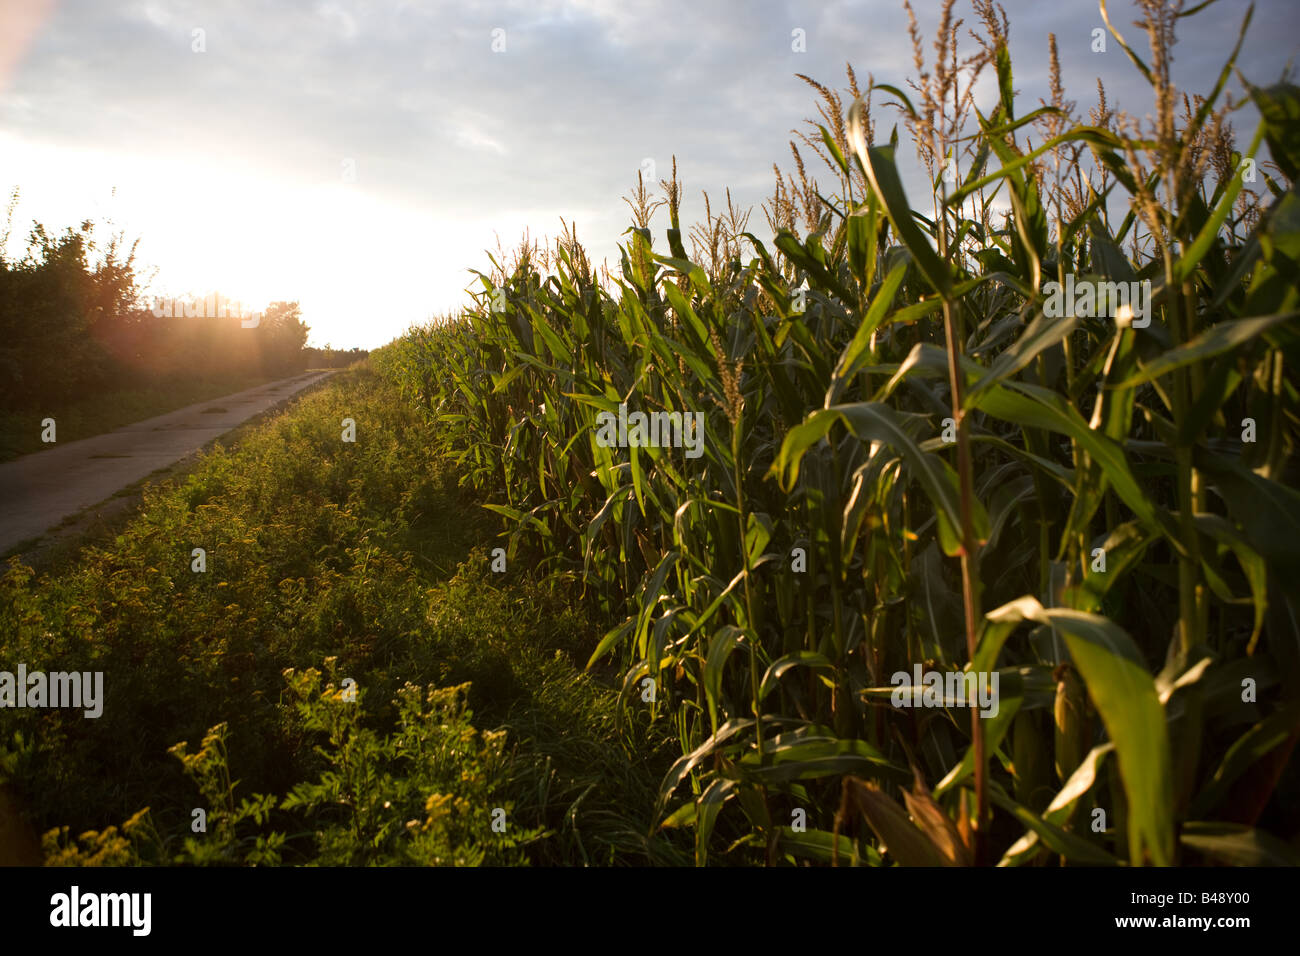 field of Maize in Germany - Zea mays - Stock Image